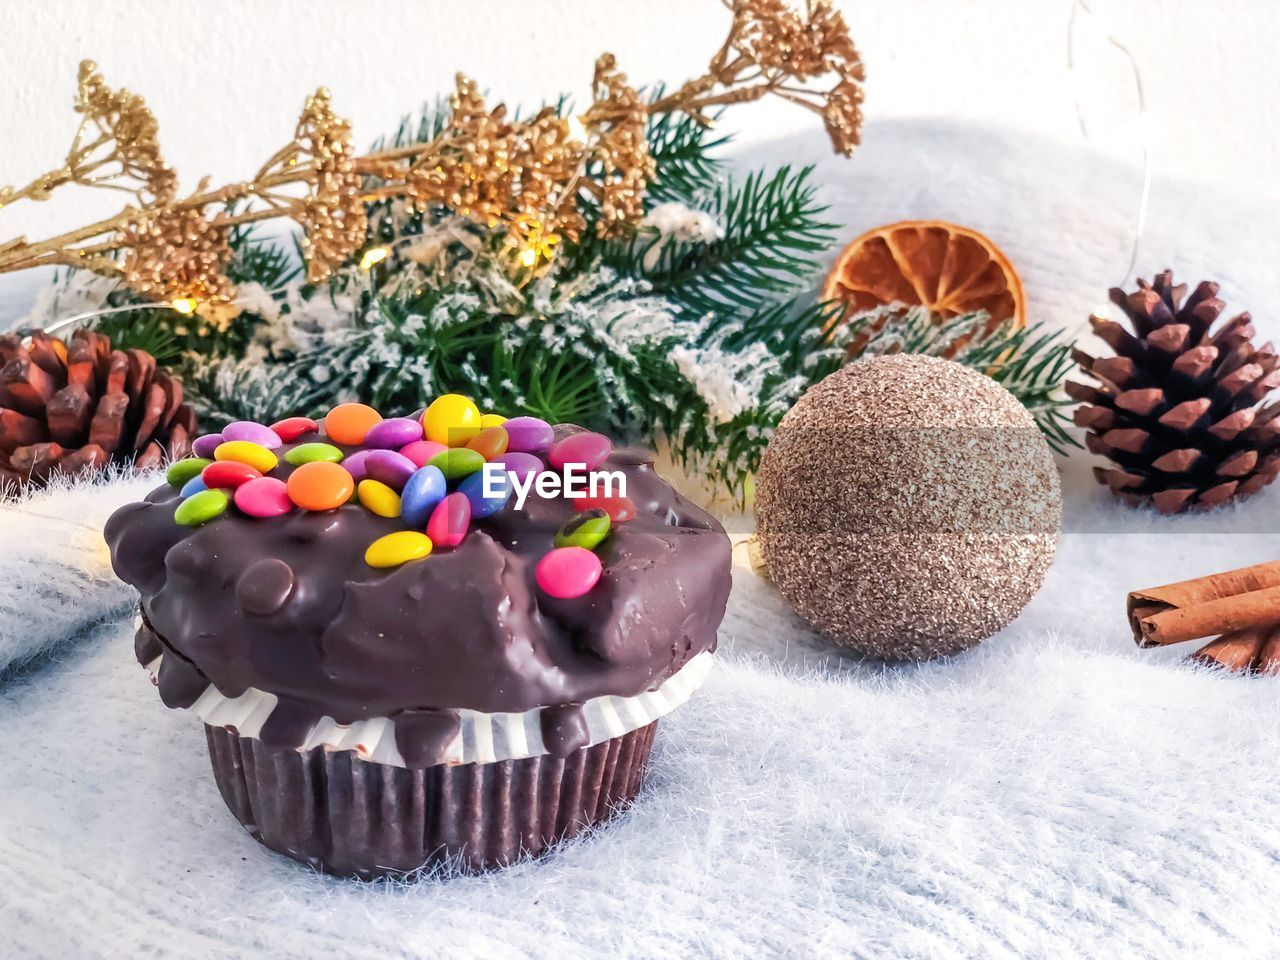 food, food and drink, sweet food, indulgence, decoration, holiday, freshness, sweet, temptation, celebration, multi colored, unhealthy eating, still life, dessert, indoors, baked, table, cake, no people